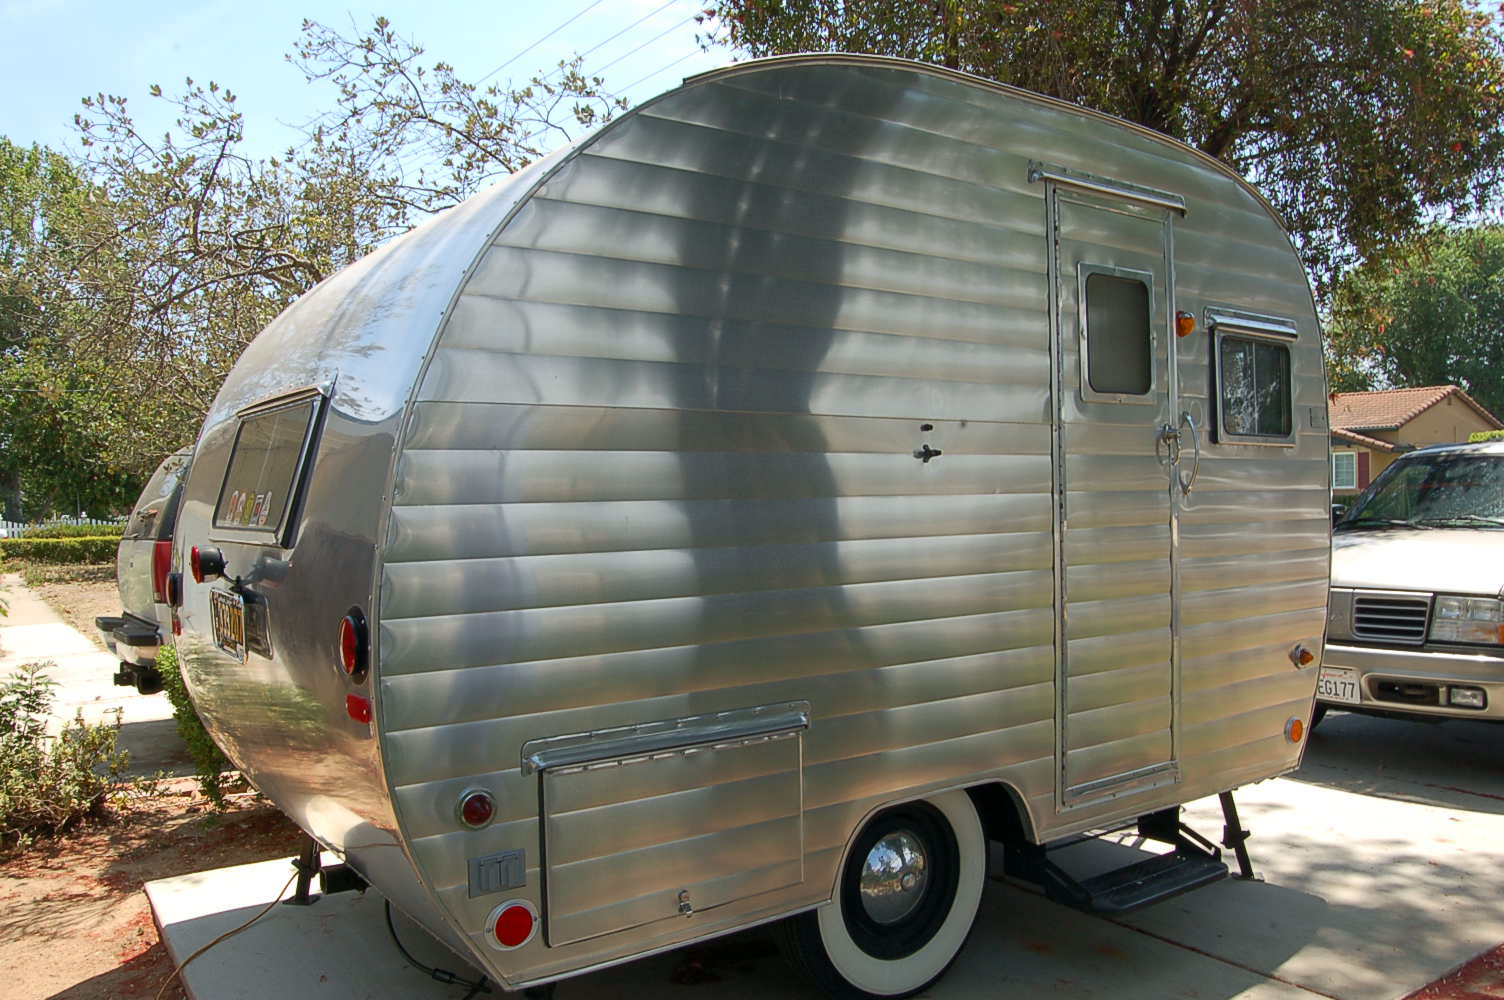 Beautifully Polished Aluminum Siding On A Classic 1953 Aljoa Travel Trailer